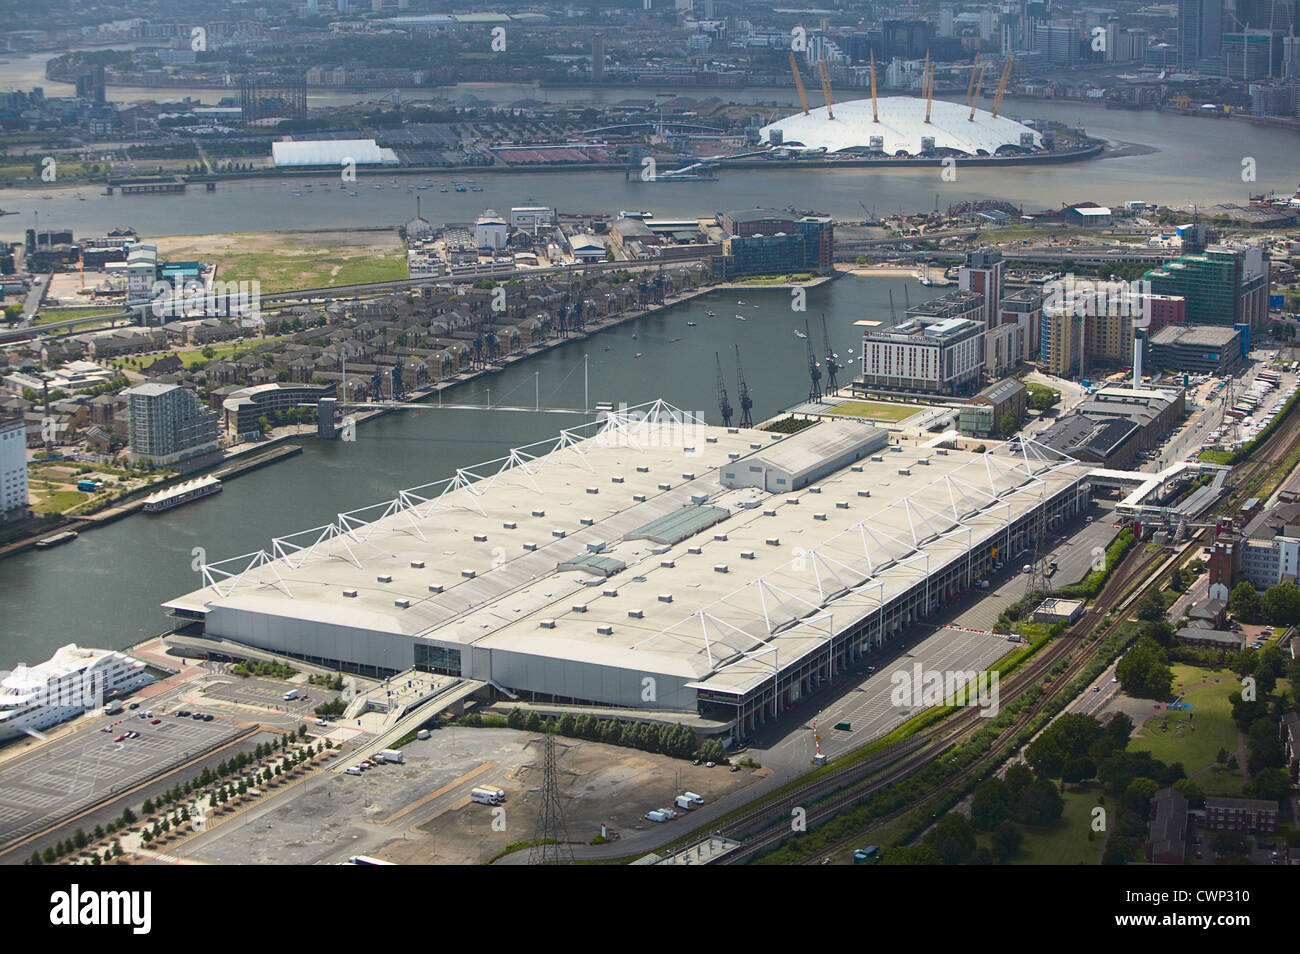 Aerial view of the ExCel Exhibition Centre Royal Victoria Dock and the Millennium Dome. London, UK. - Stock Image